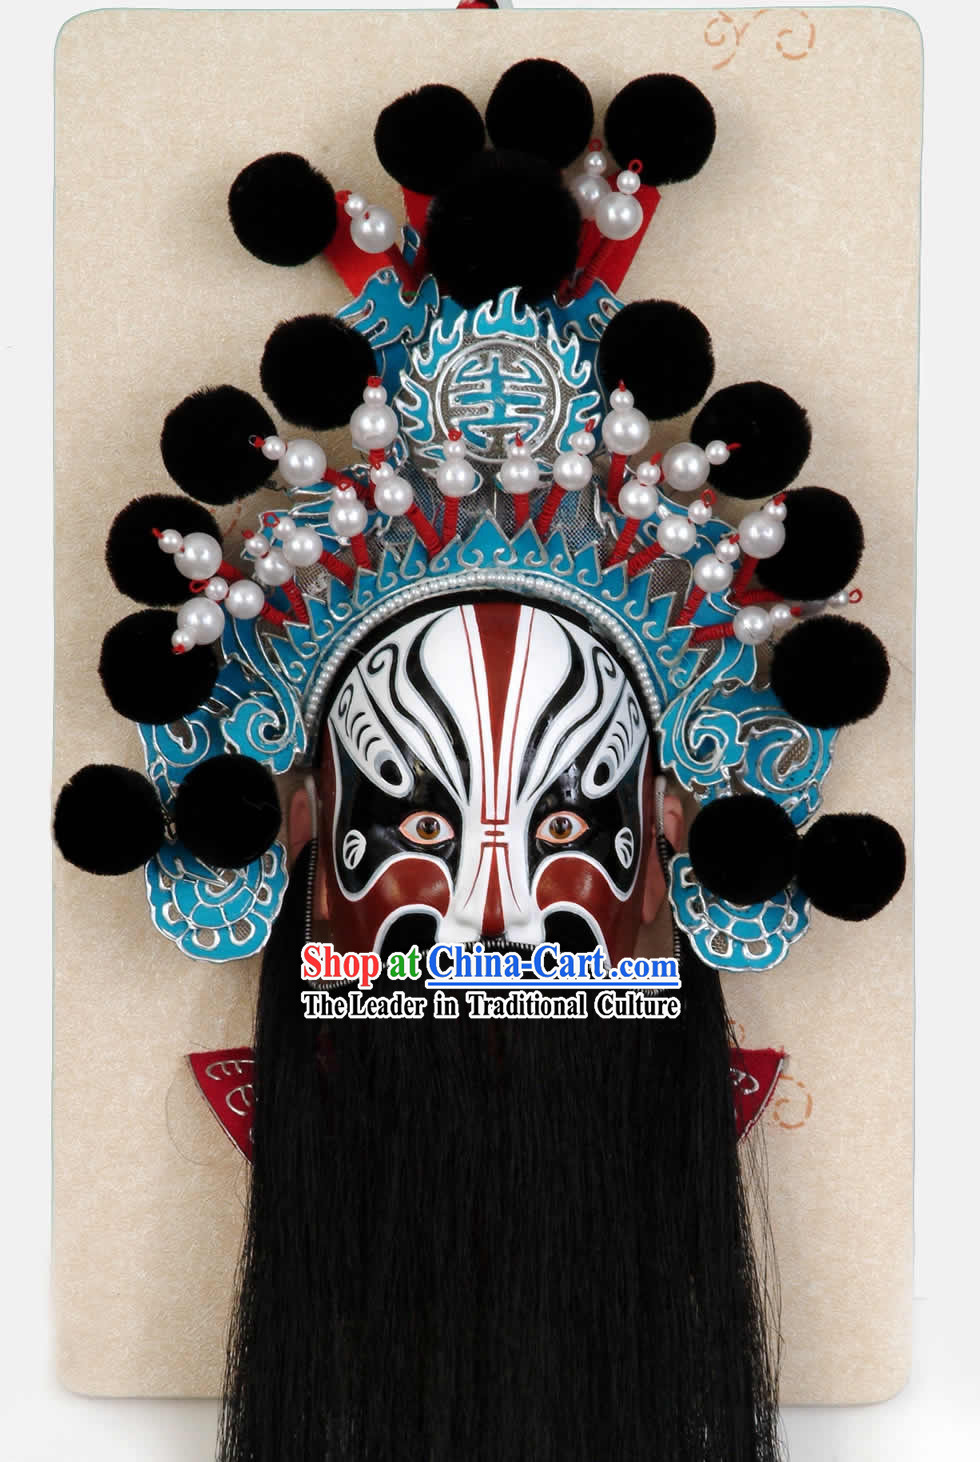 Handcrafted Peking Opera Mask Hanging Decoration - Wei Yan